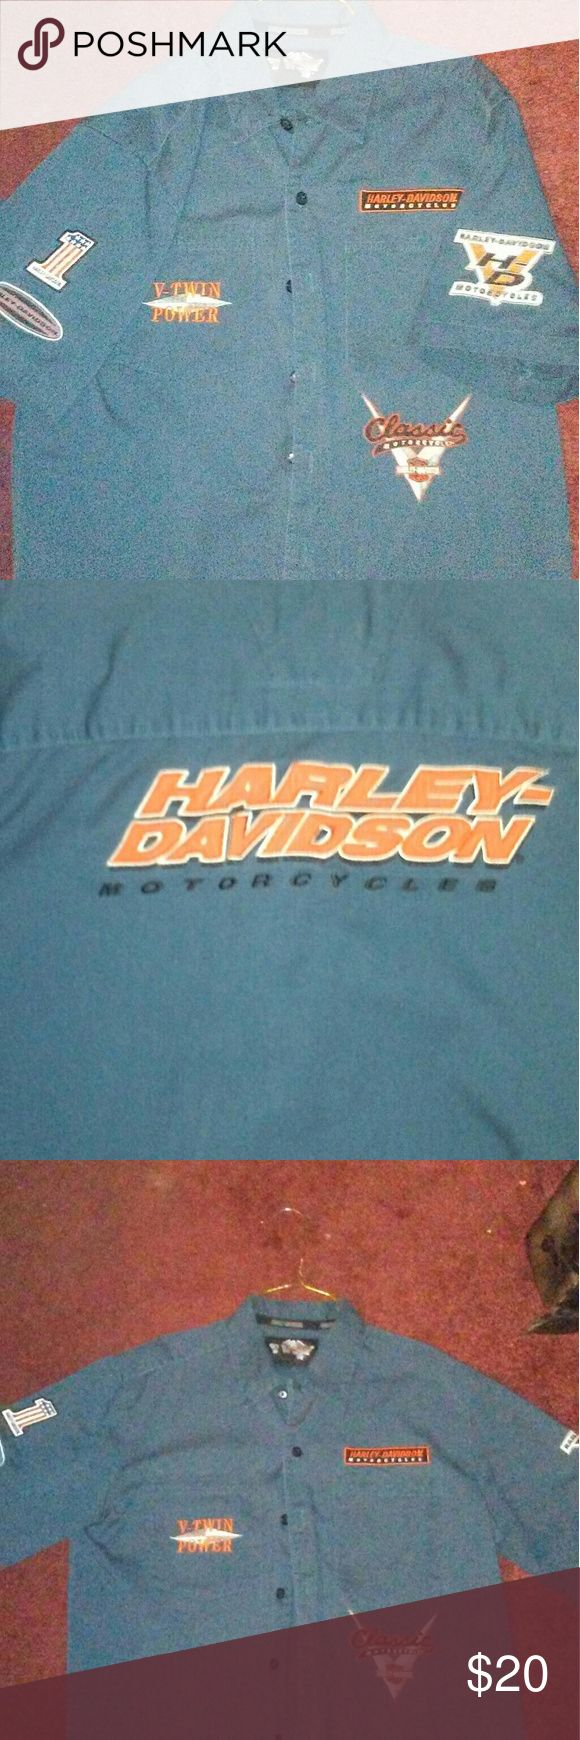 Harley Davidson shop shirt Very nice great for riding gently worn has patches on sleeves and front pockets I love this shirt its real think material but I have so many shop shirts Harley-Davidson Tops Button Down Shirts